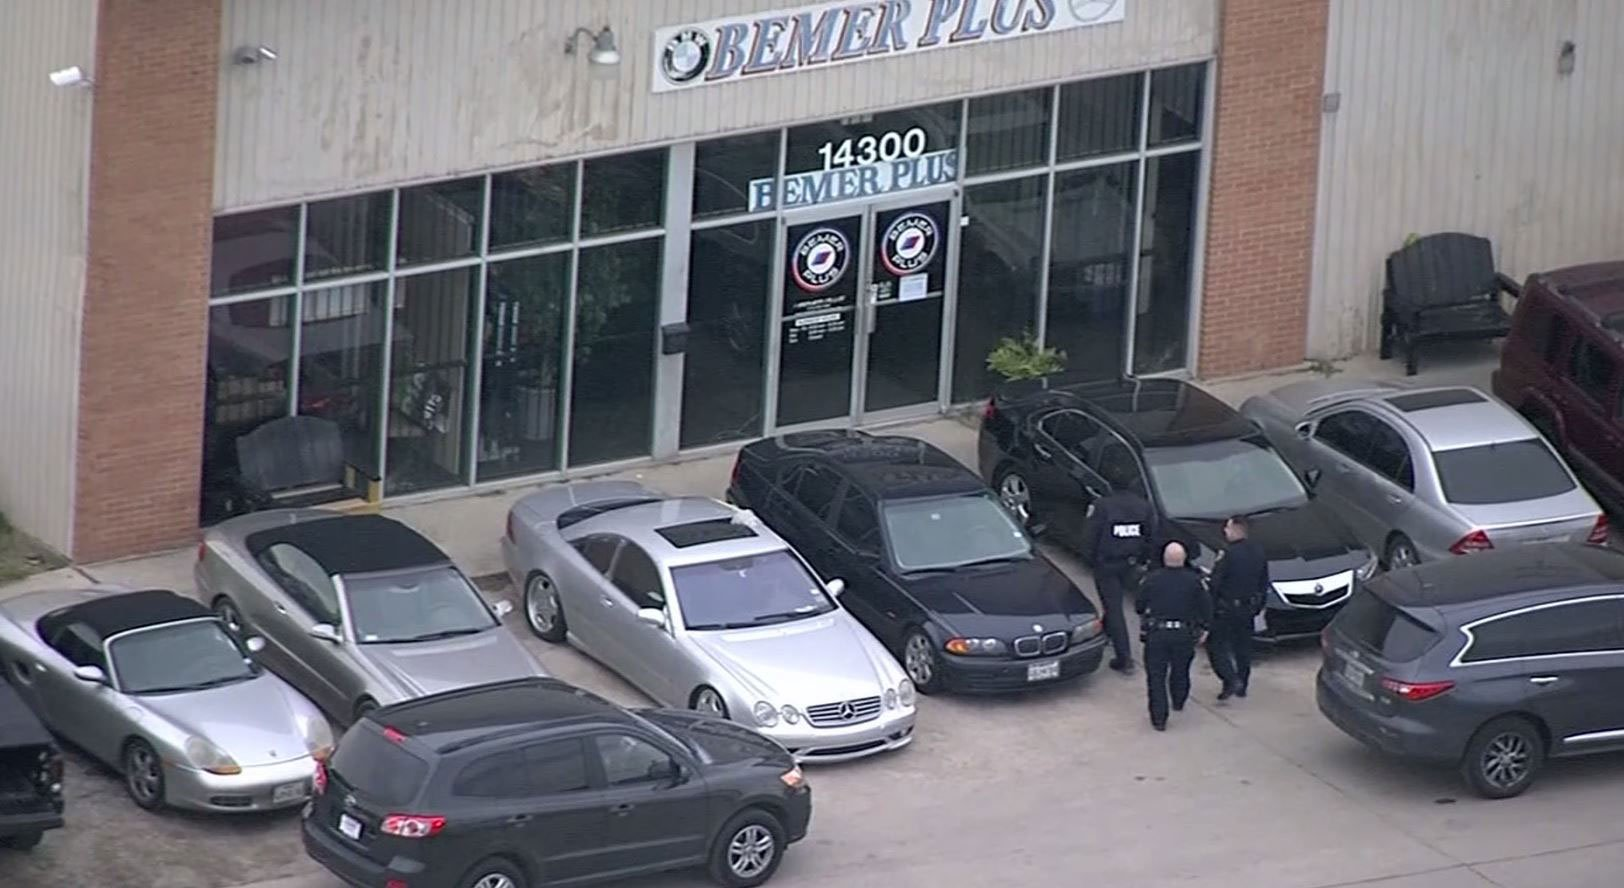 The Friday afternoon shooting was carried out by a former shop employee who killed two workers and then took his own life, police said.(Source: RNN)